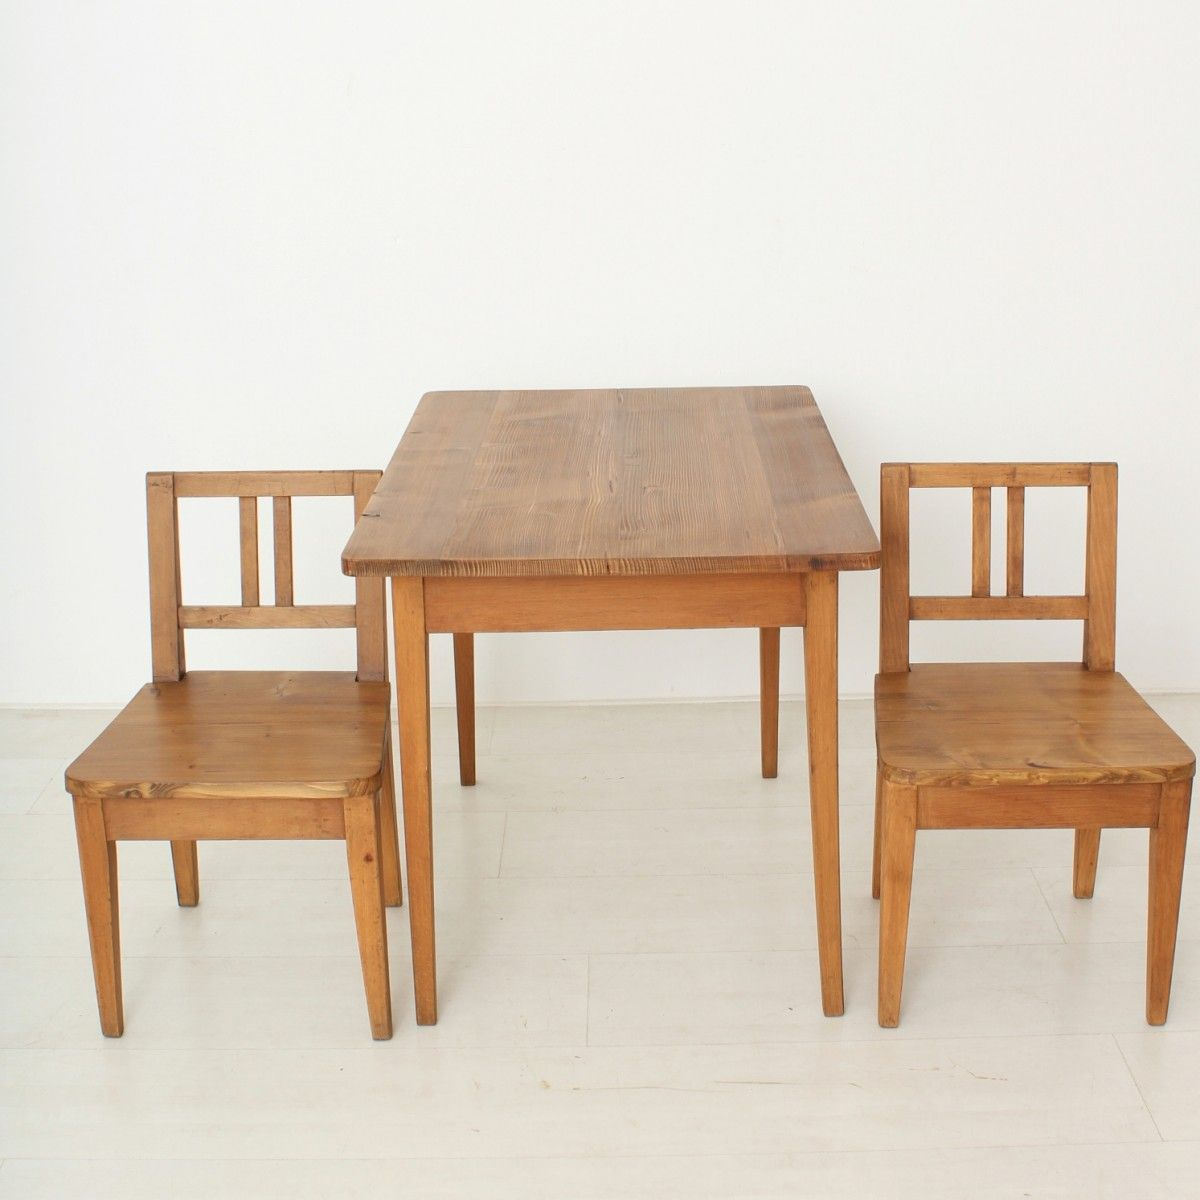 Vintage Childrens Table & Chair Set Set of 3 for sale at Pamono